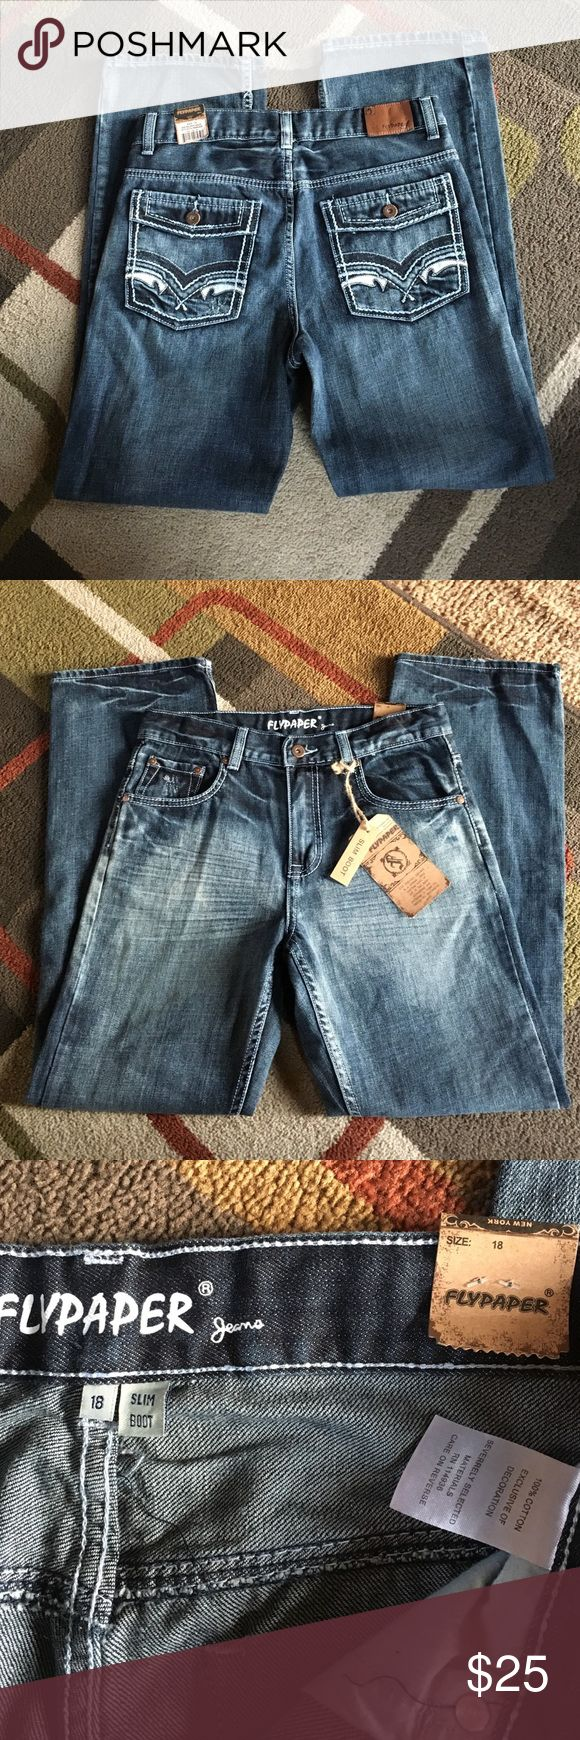 "Boy's Flypaper jeans🍂 NWT🍂 Boy's size 18 🍂slim boot cut🍂 material 100% cotton🍂inseam 30"" Flypaper jeans Bottoms Jeans"